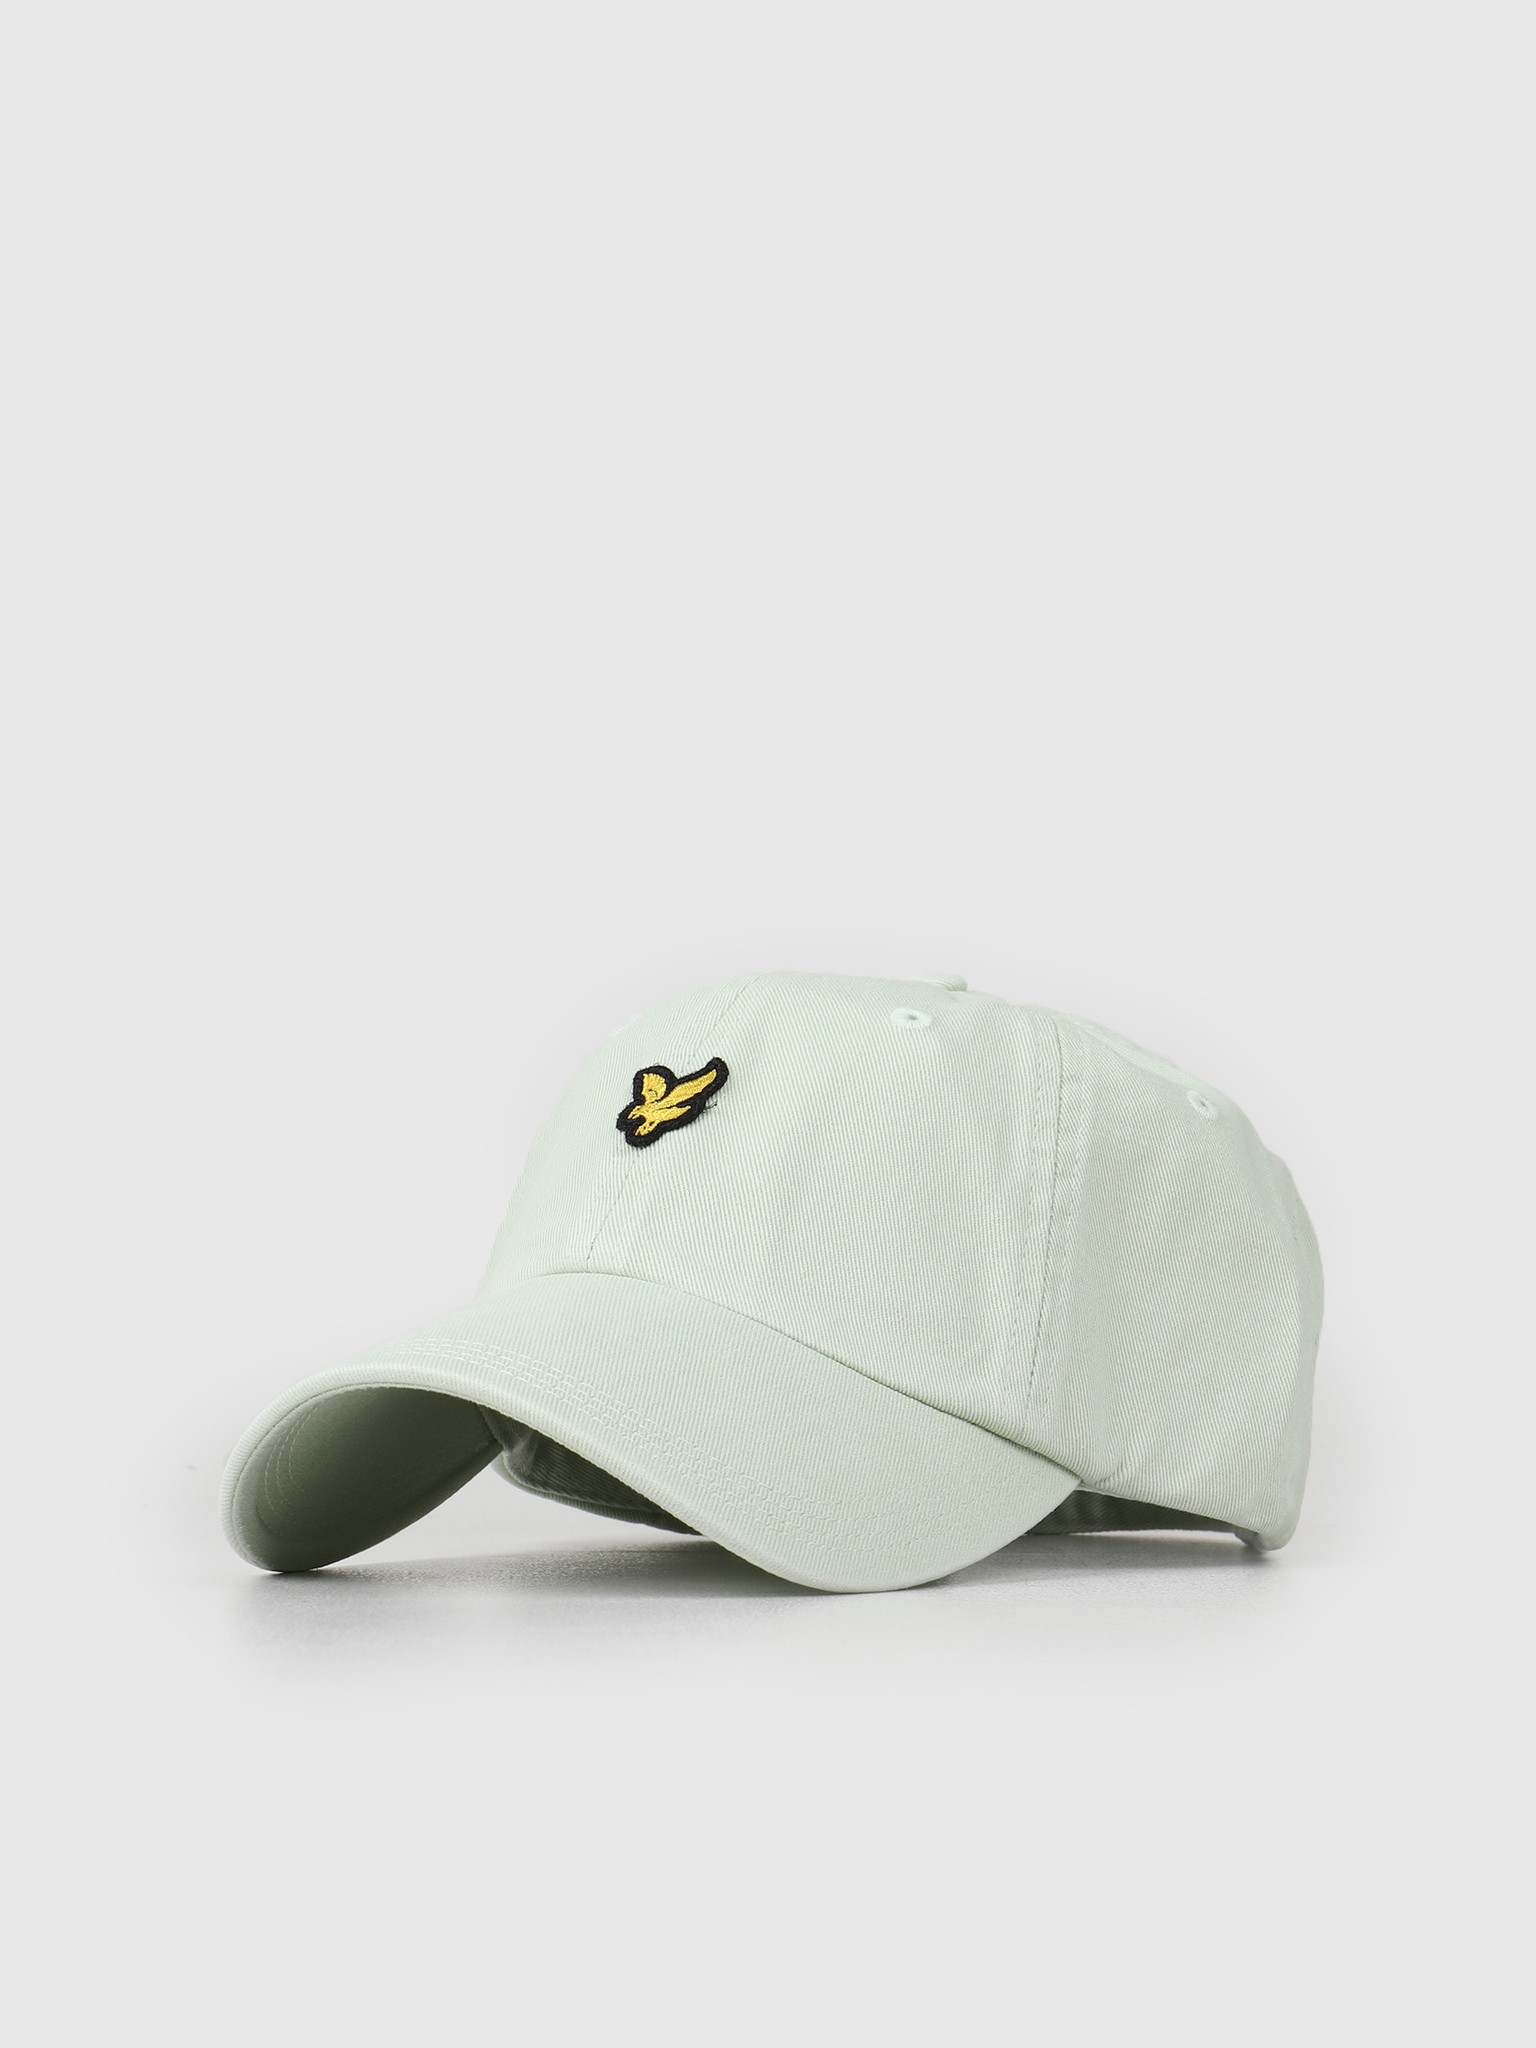 Lyle and Scott Lyle and Scott Washed Twill Baseball Cap Z457 Sea Foam Green HE1003A